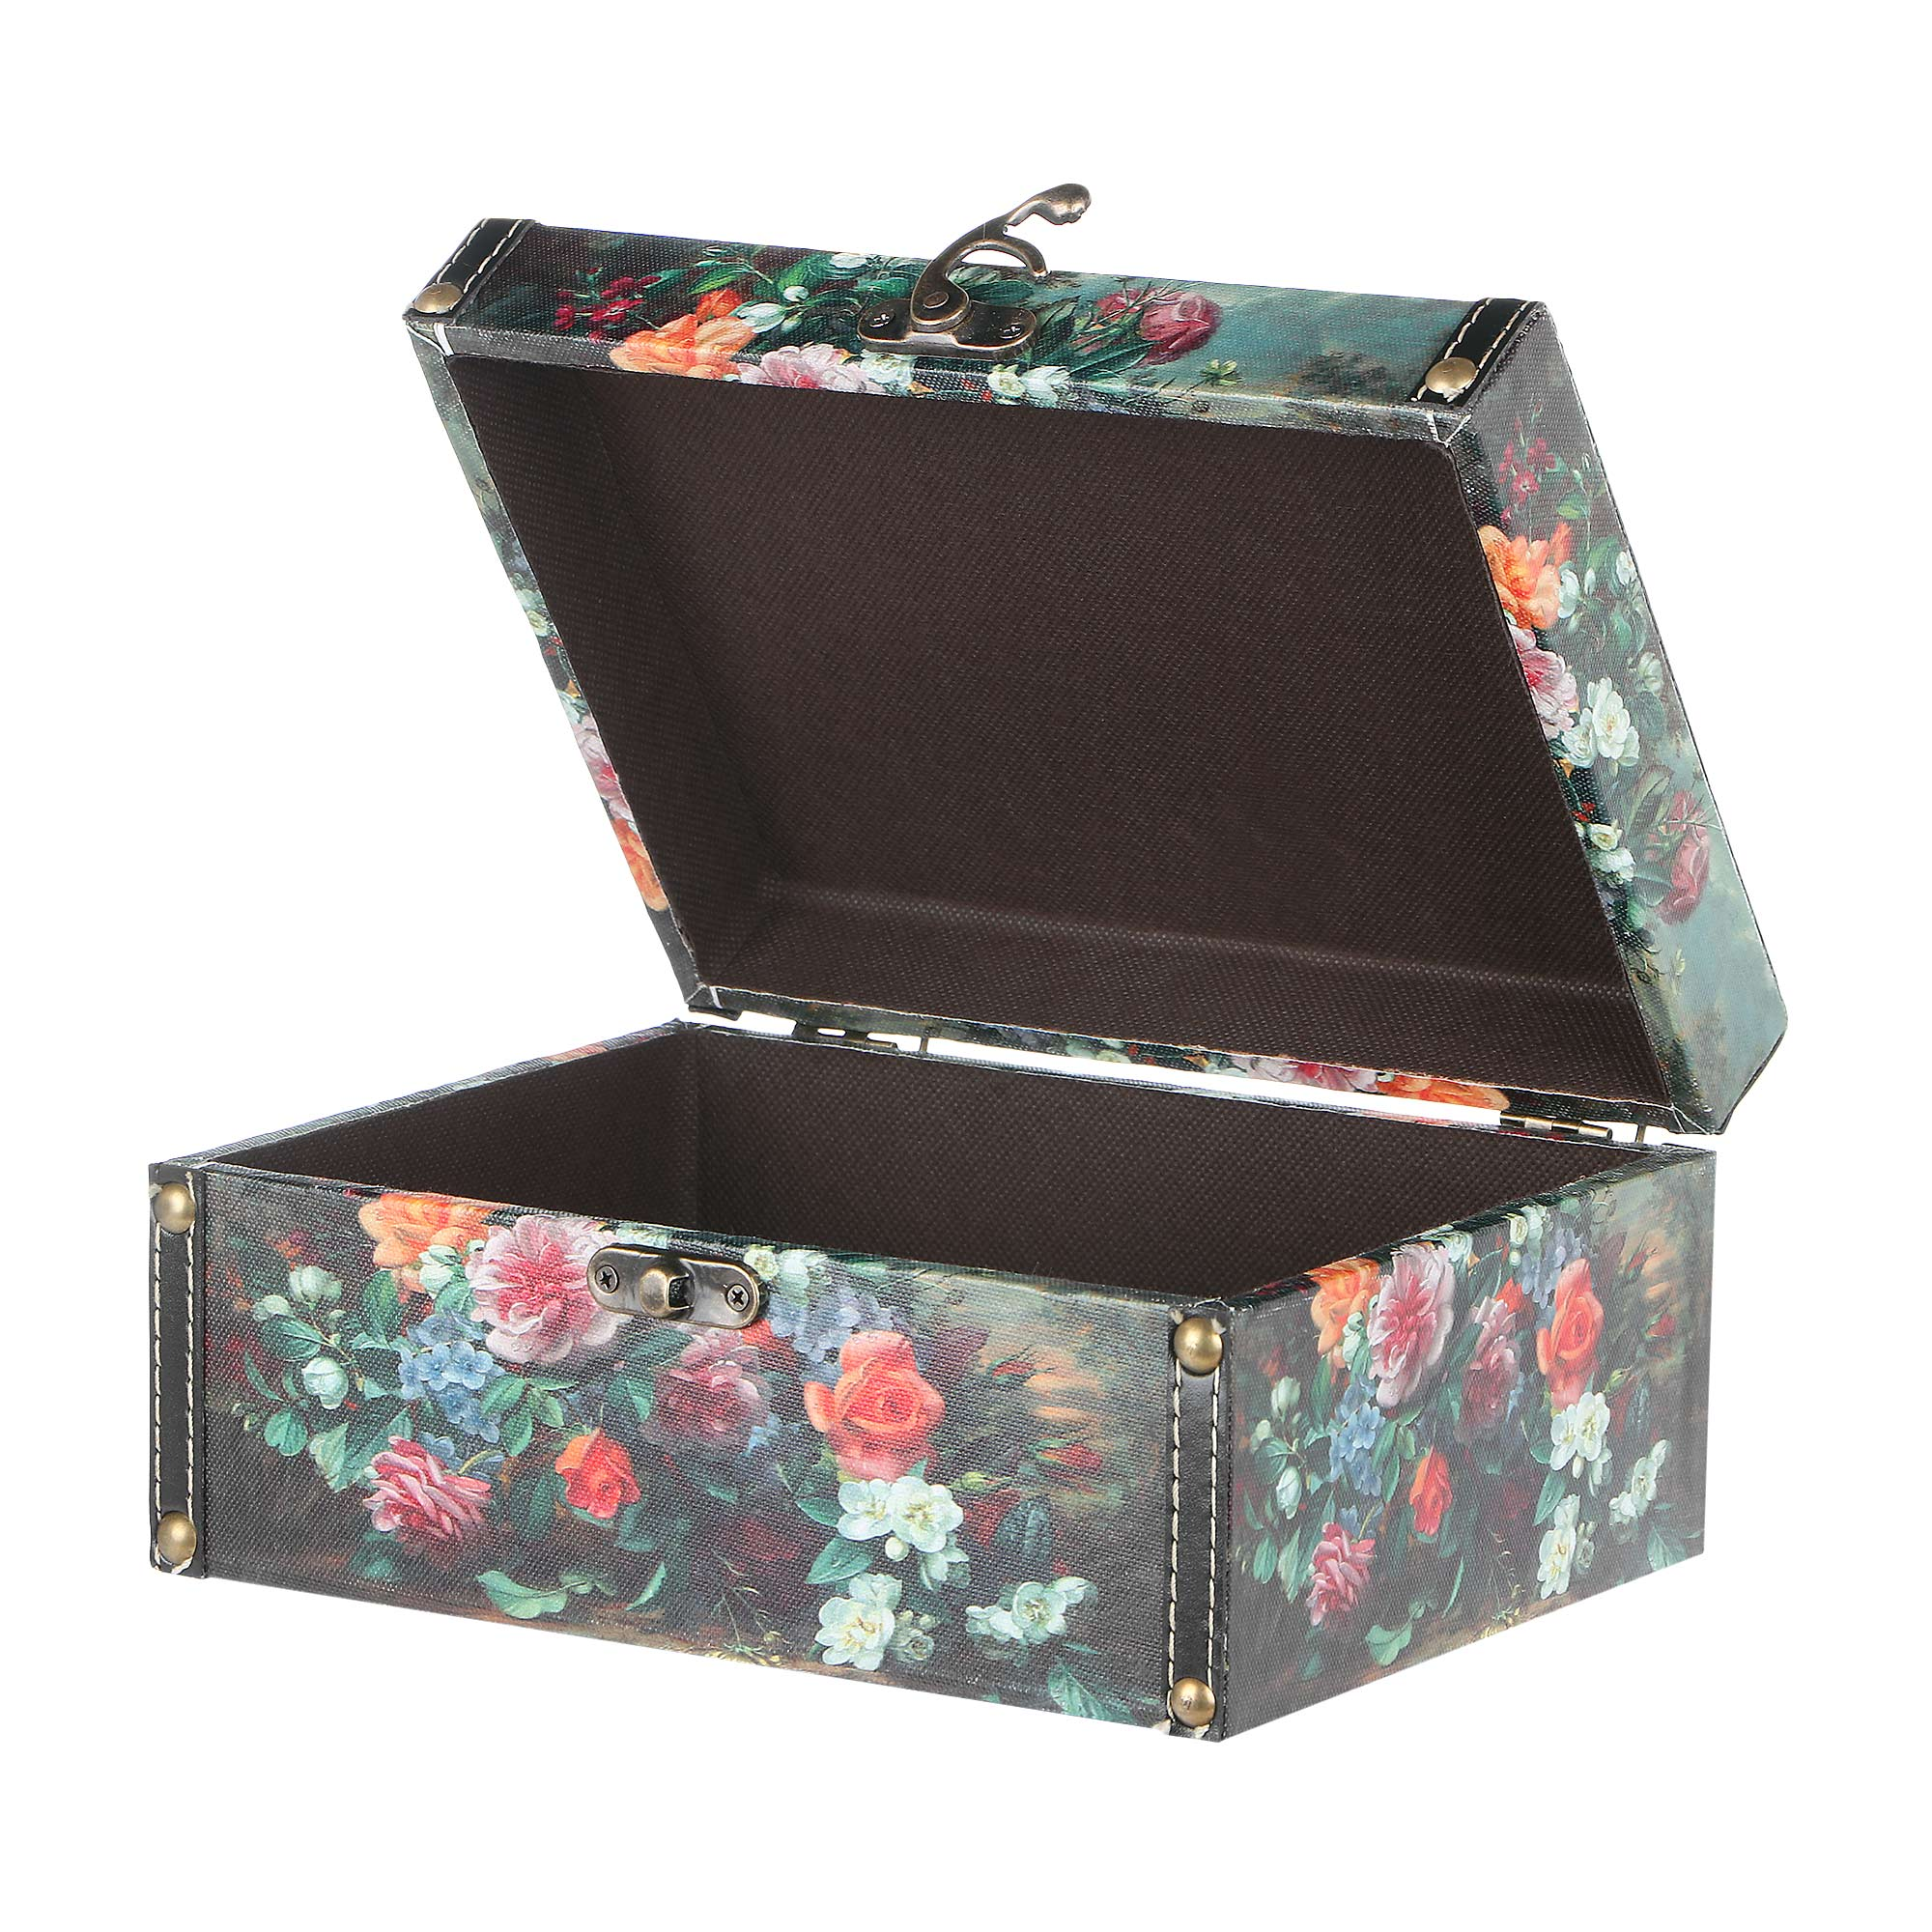 Сундук Fuzhou fashion home flowers 26х20х13 см